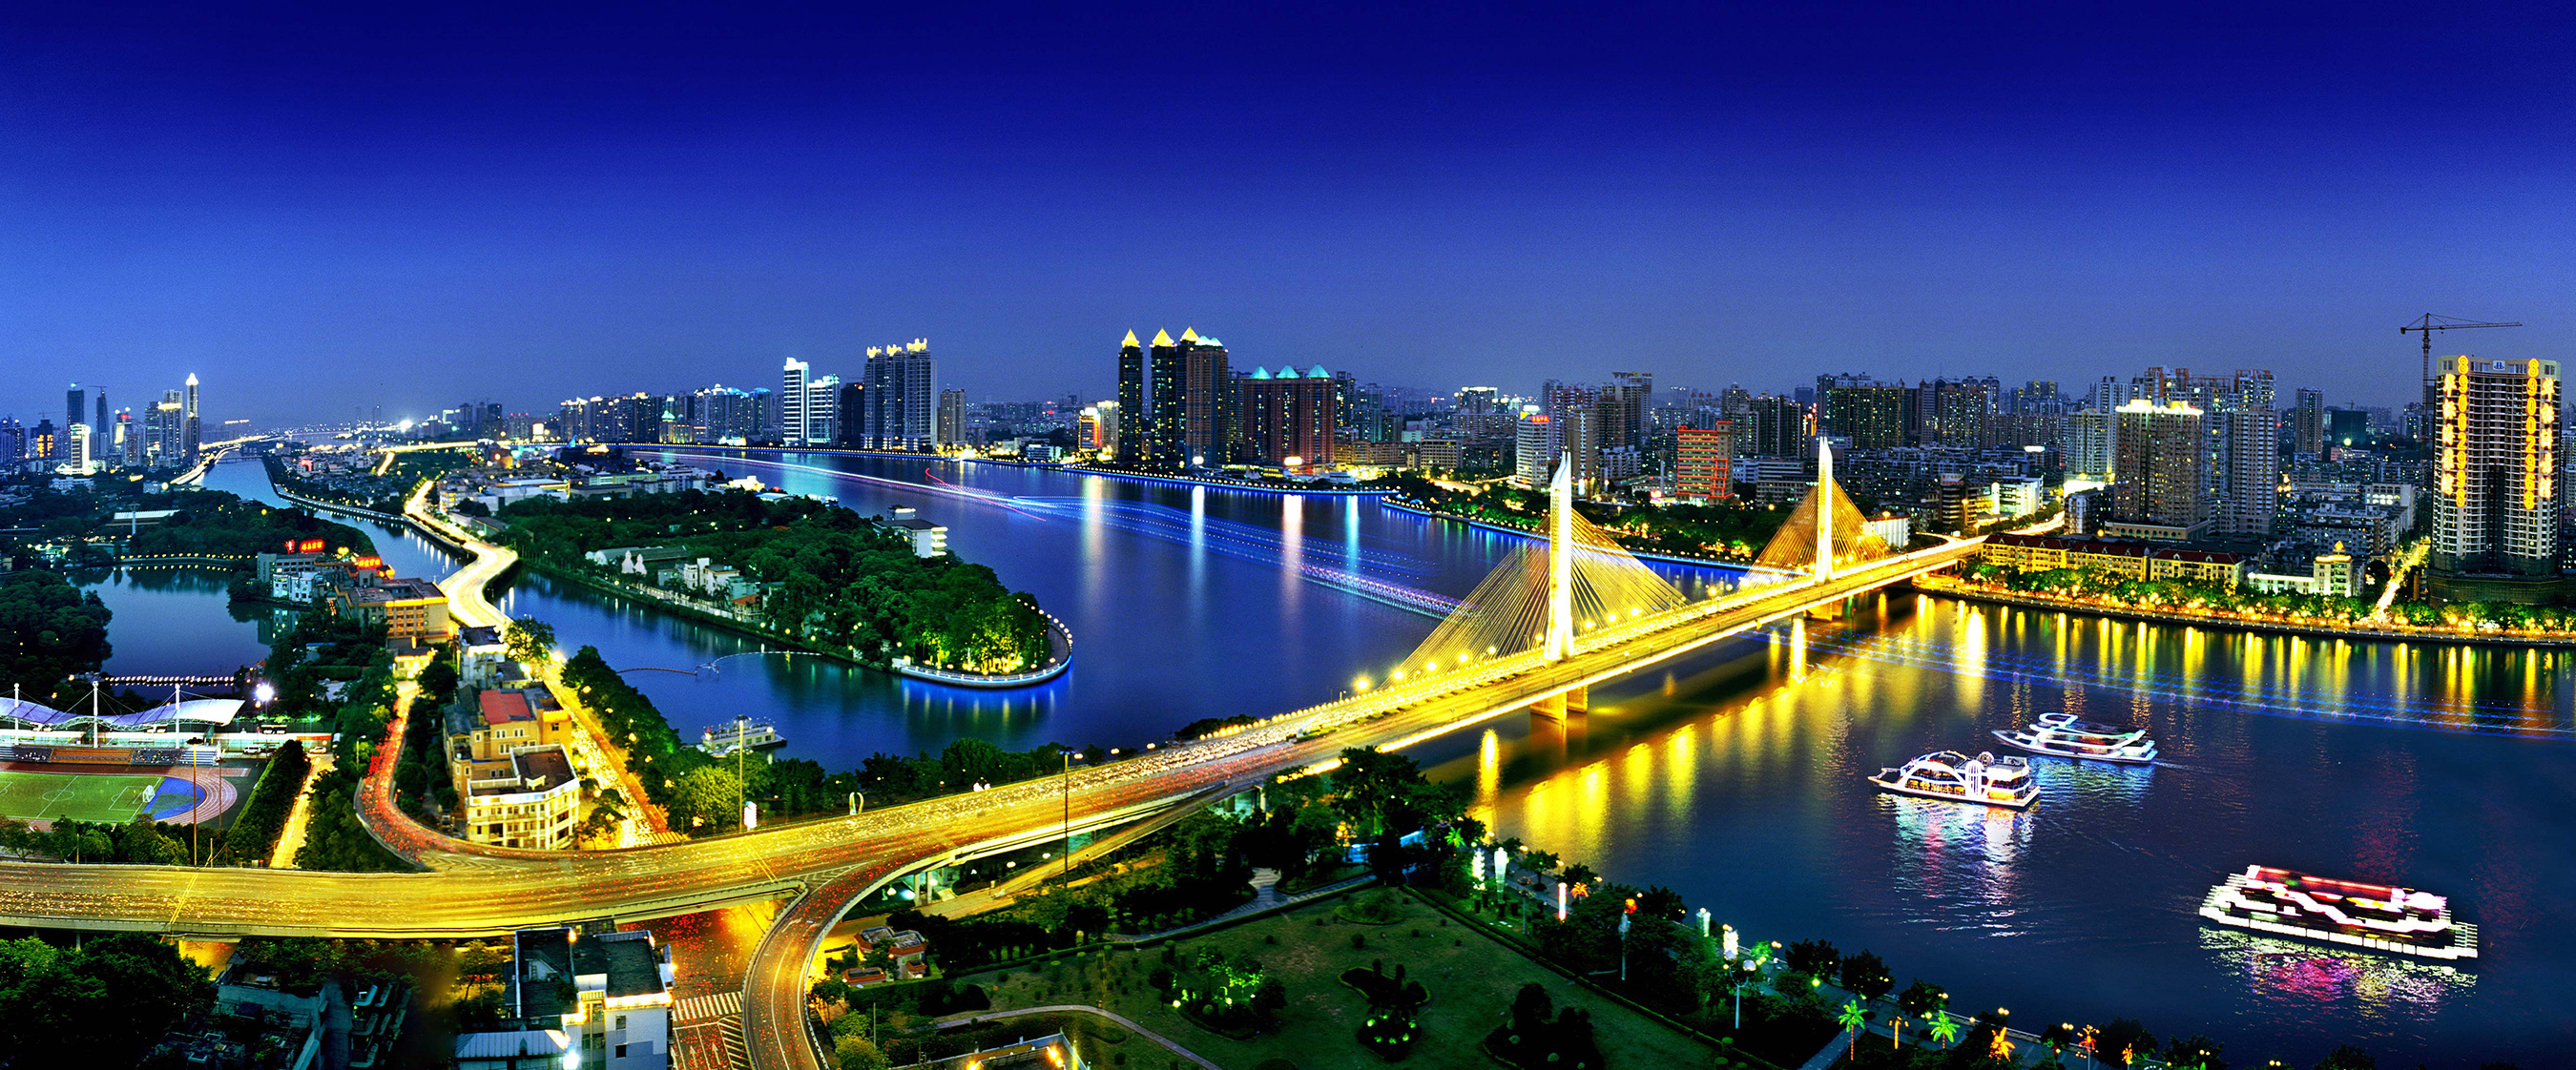 Night view of Guangzhou China.